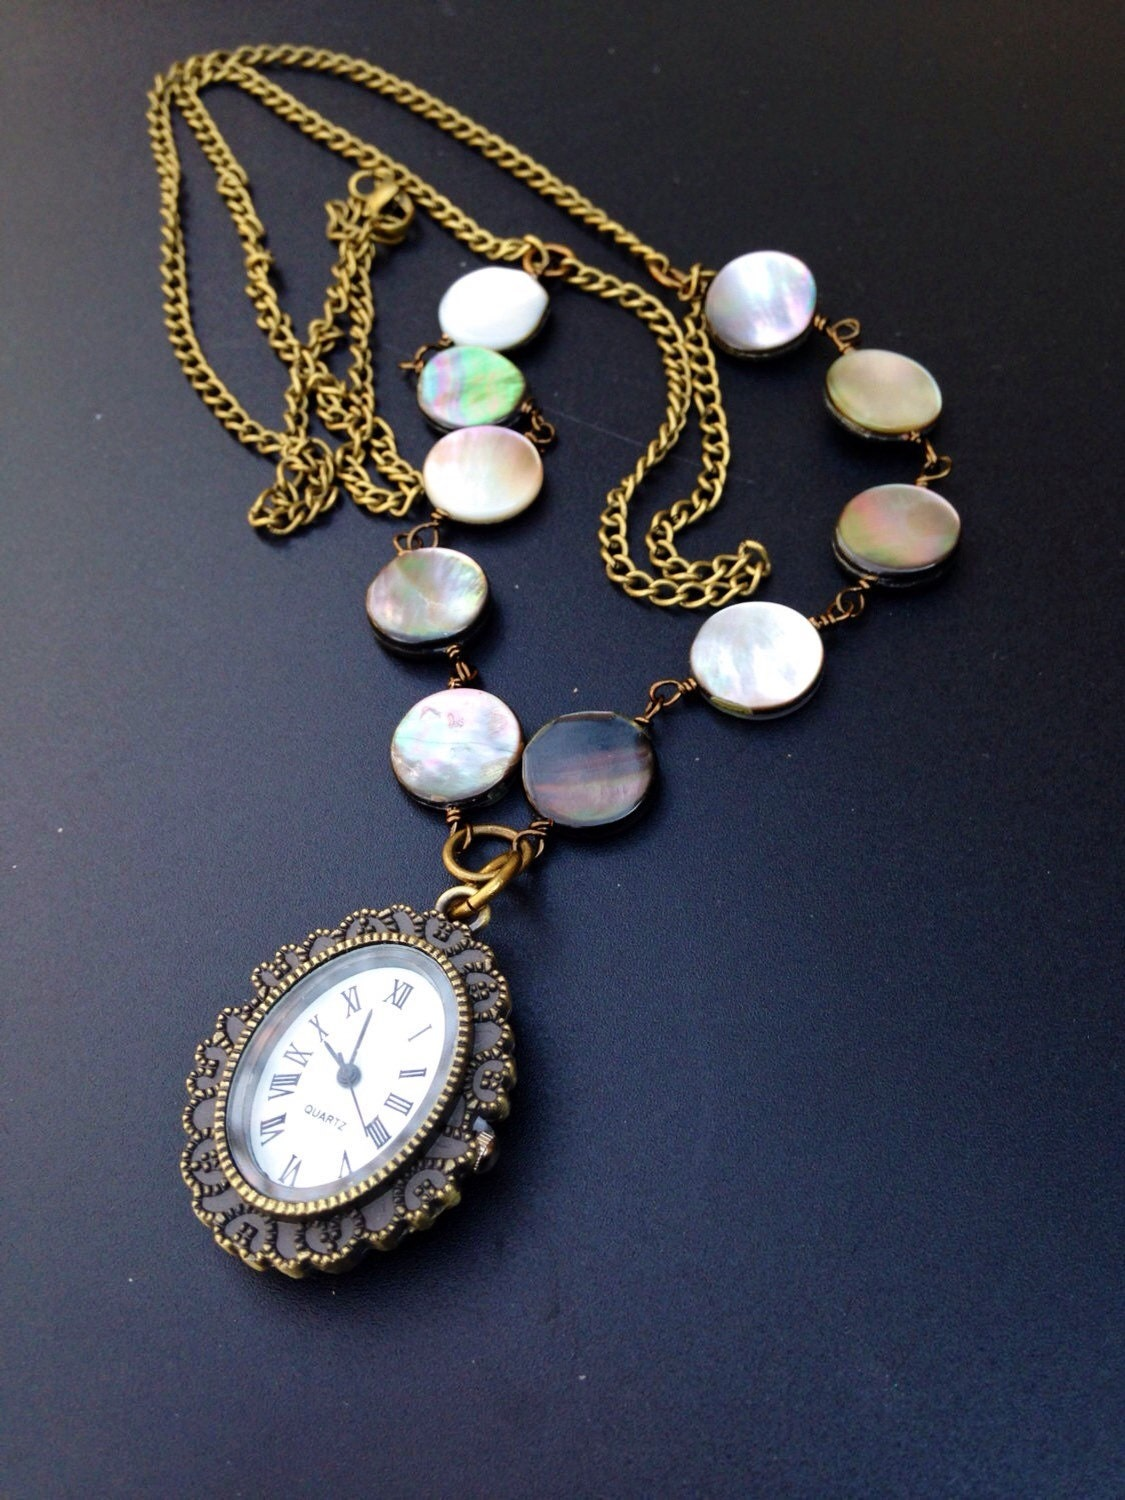 Watch Necklace Cameo Pendant Pearl Shell Long By Lyrisgems